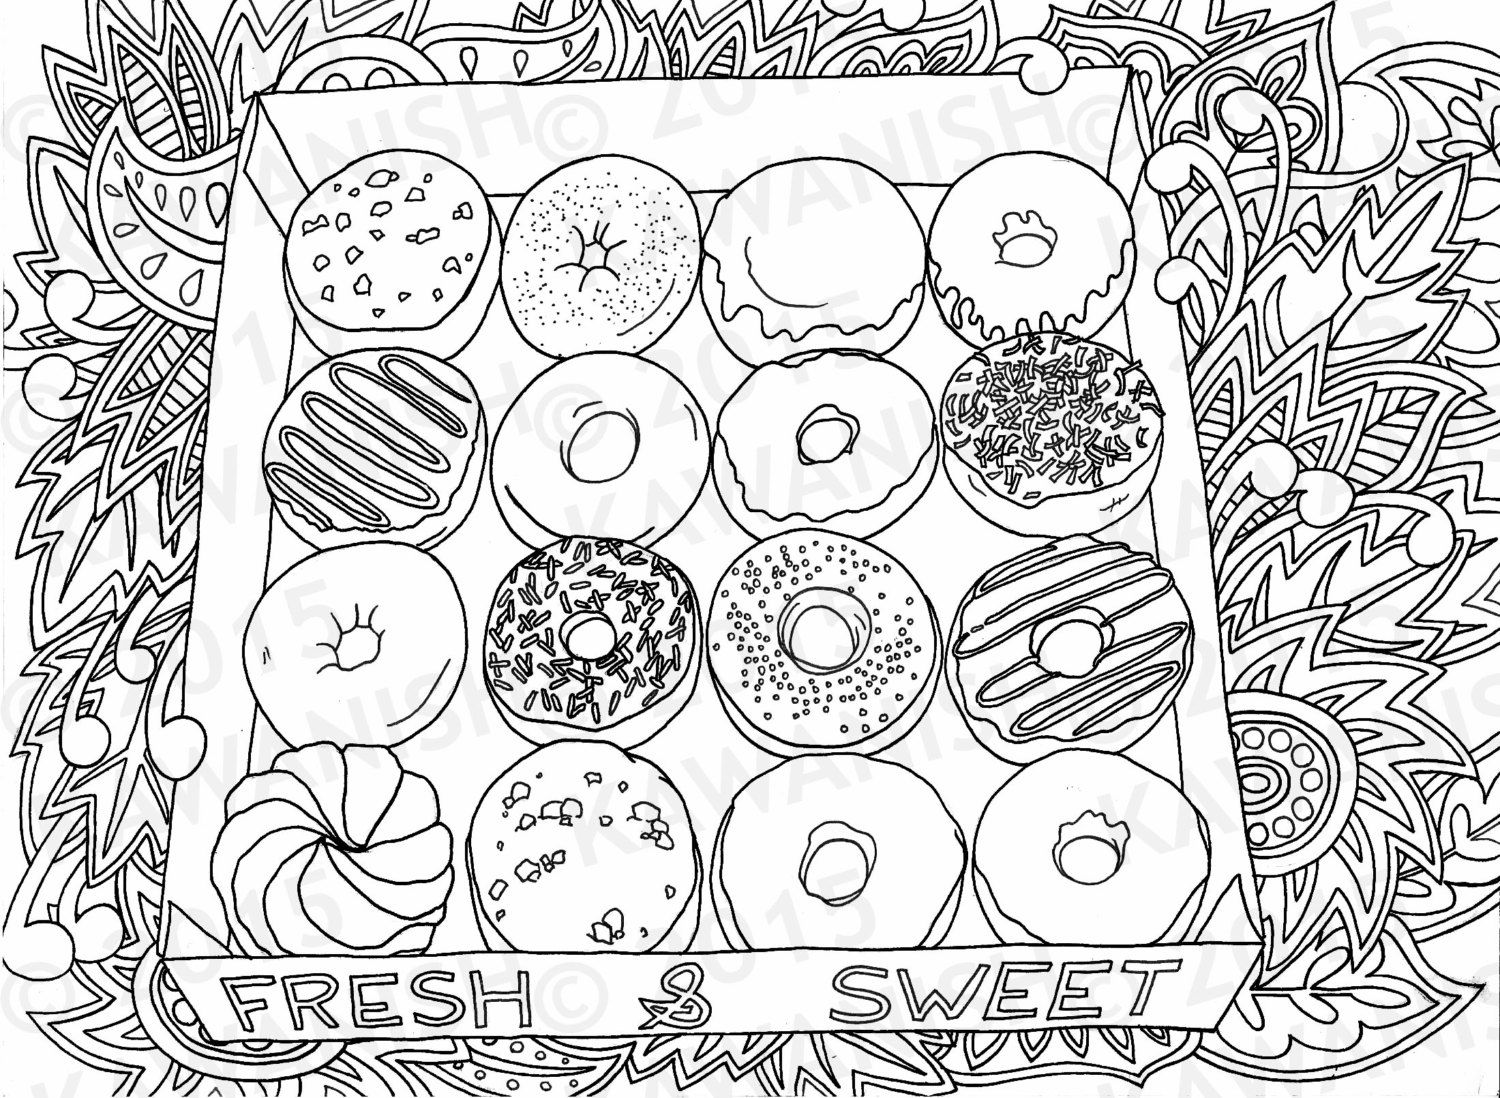 donuts doughnuts coloring page gift wall art by kawanish